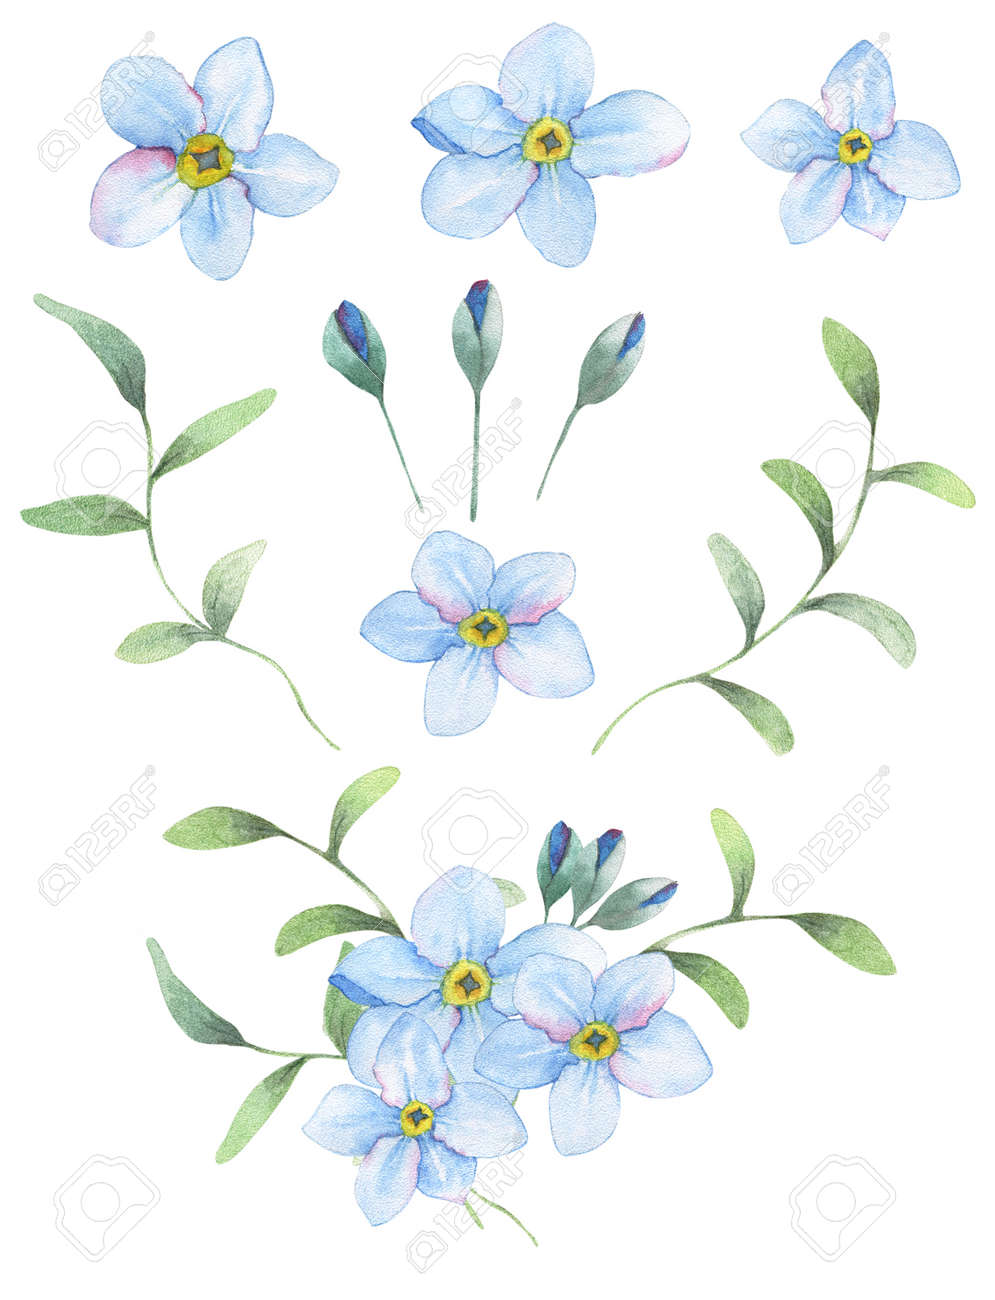 Foget-me-not flowers painted in watercolor. 9 isolated objects + bouqet from this elements. - 54341117